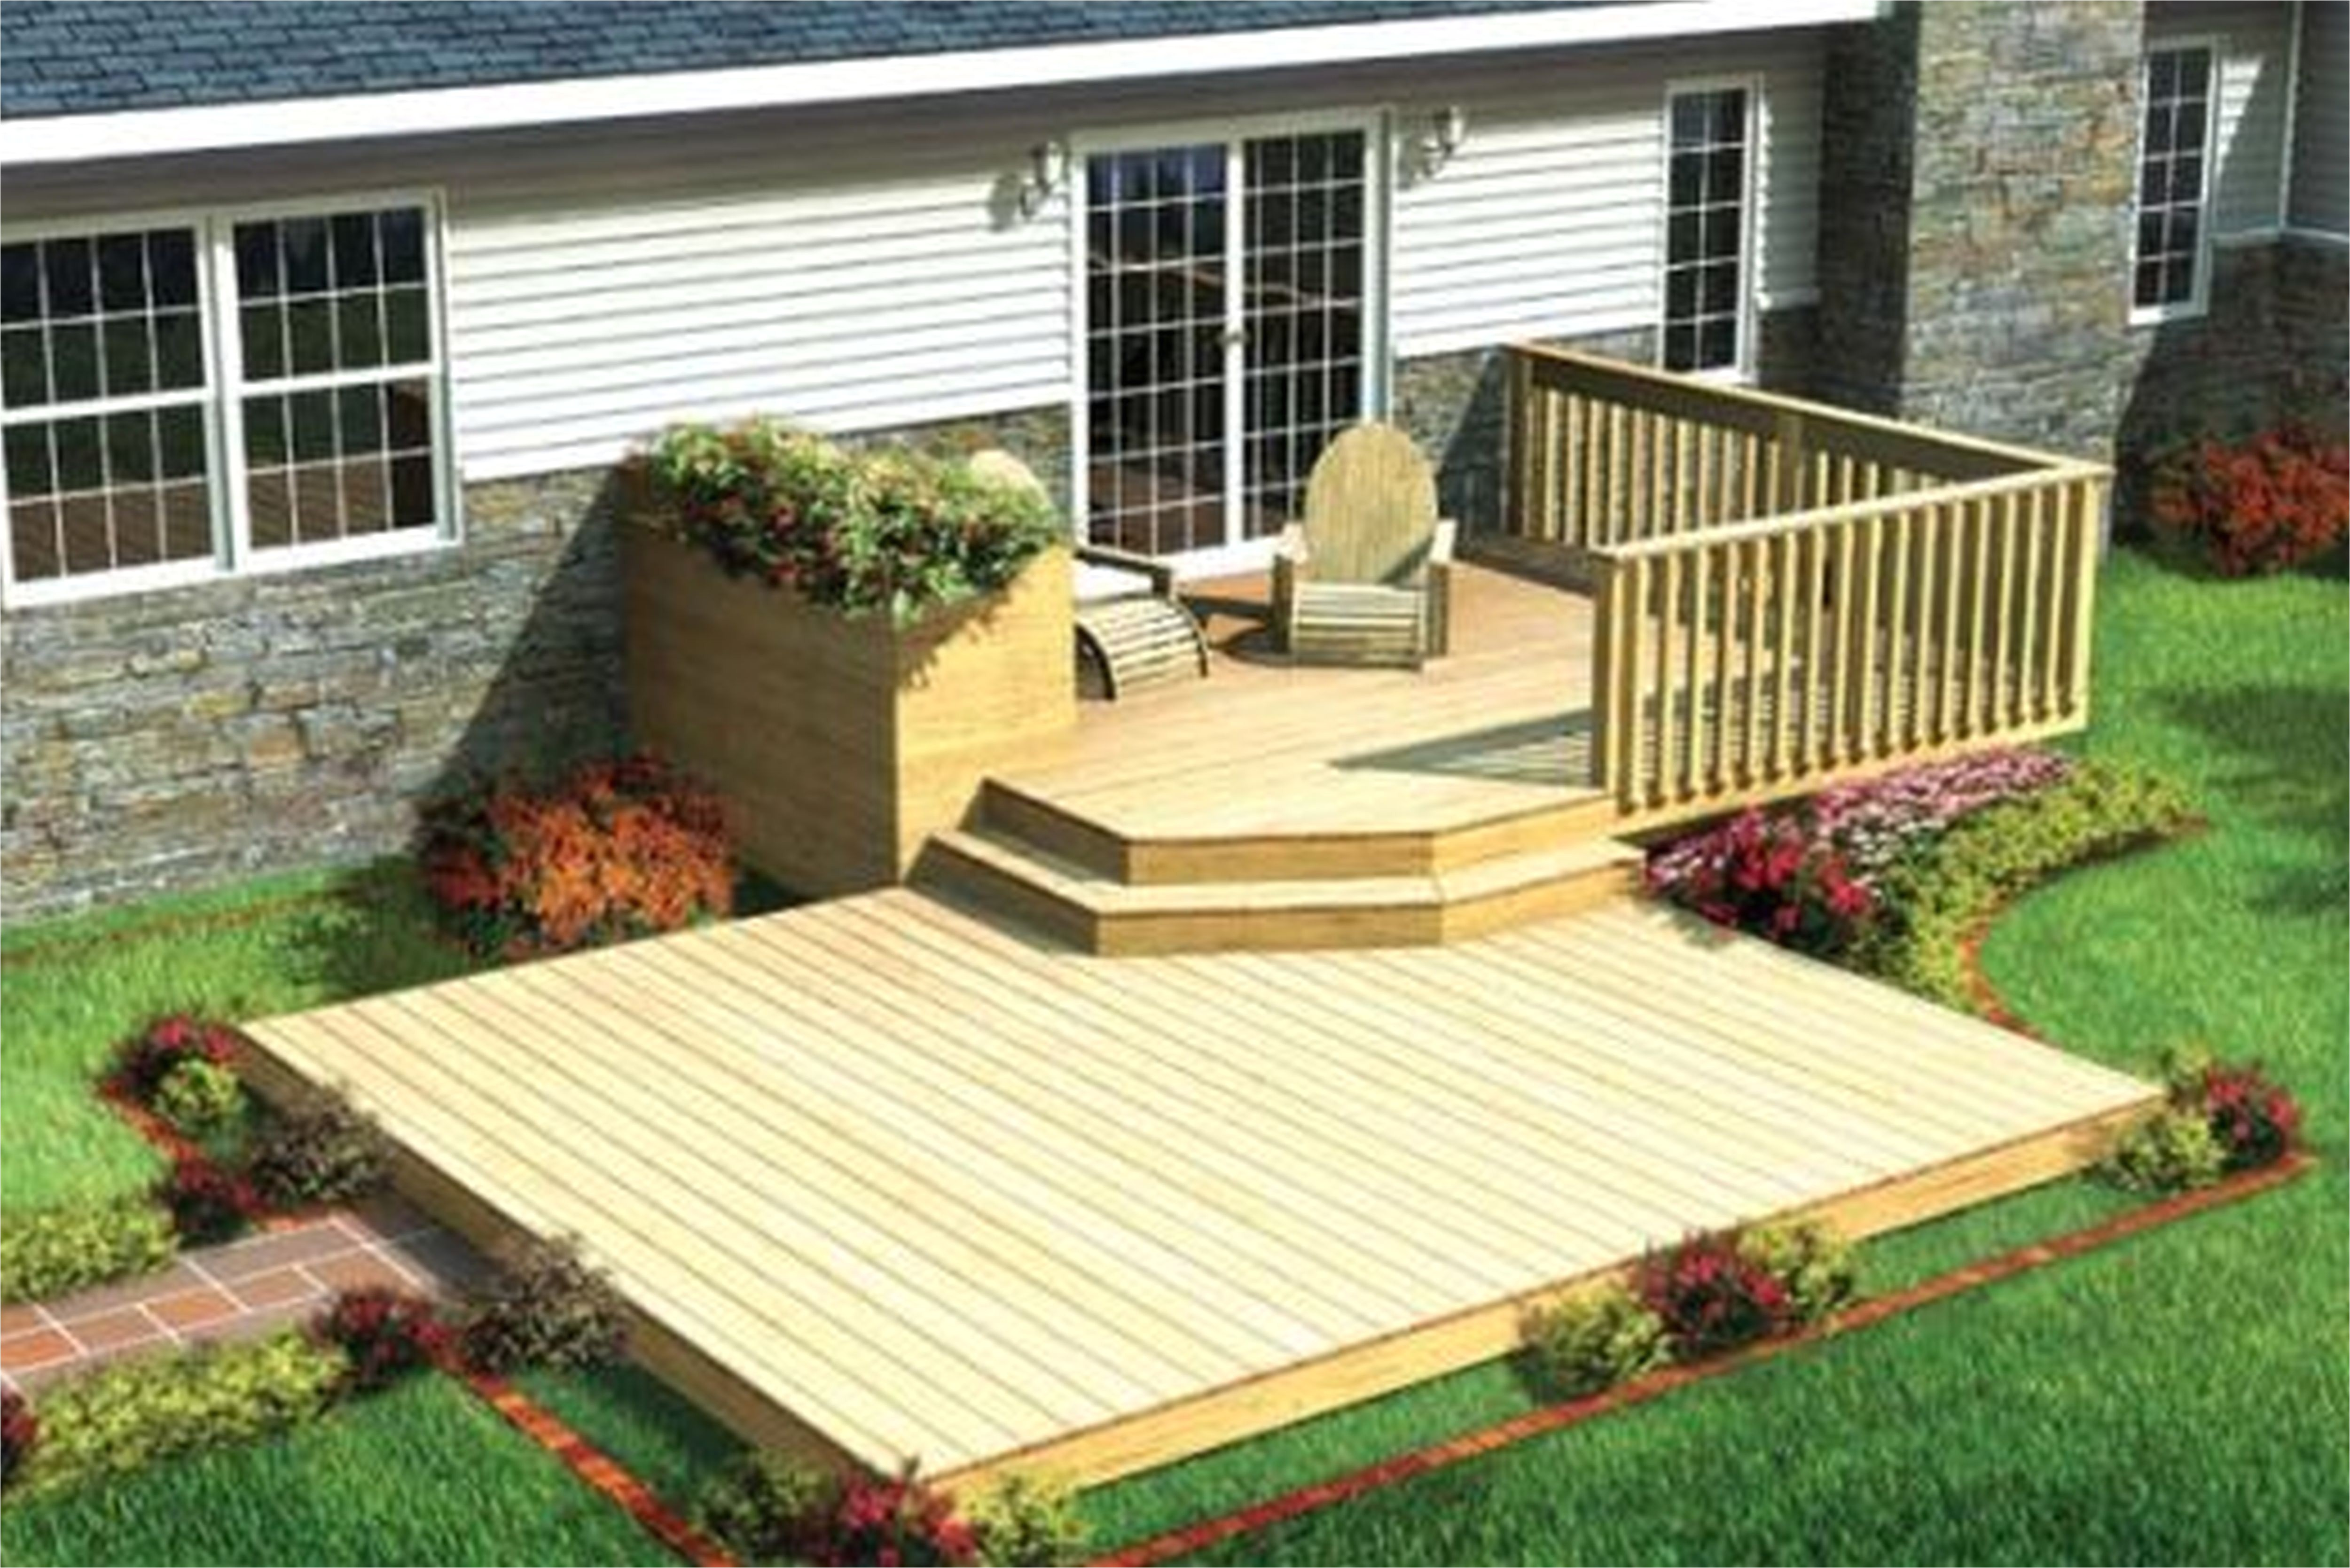 Home Depot Floating Deck Plans Deck Stunning Ground Level Deck Plans